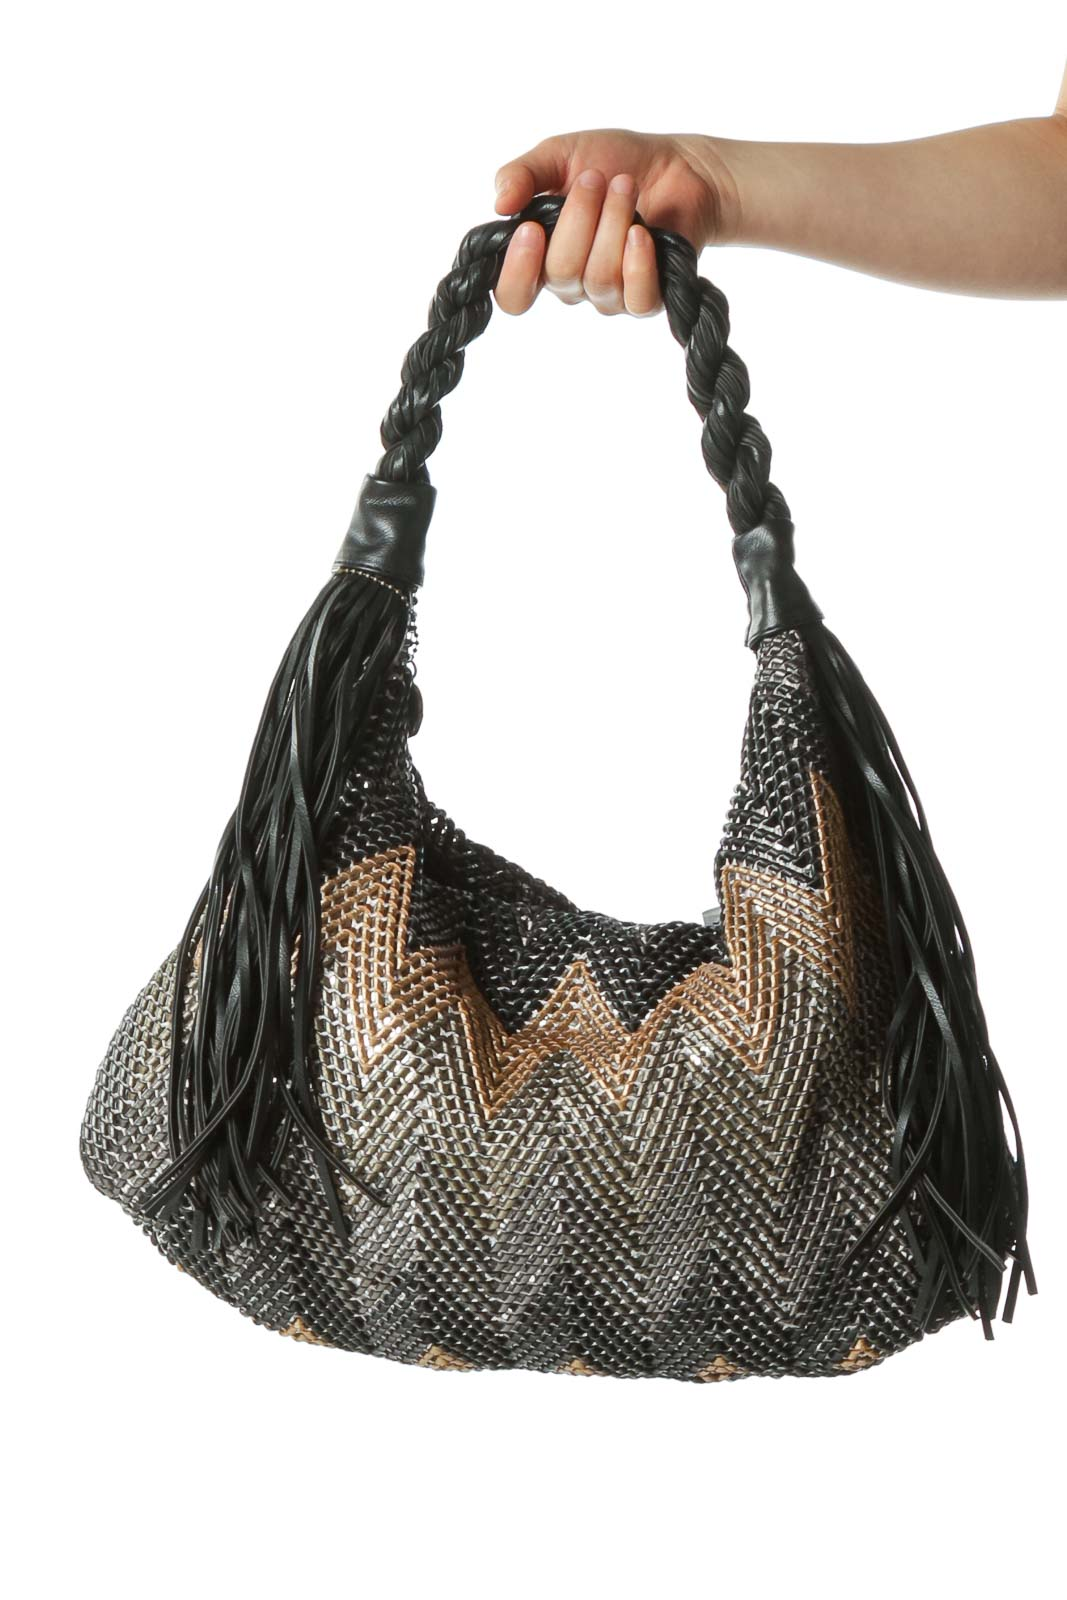 Black Tan and Silver Woven Shoulder Bag with Fringe and Twisted Shoulder Strap